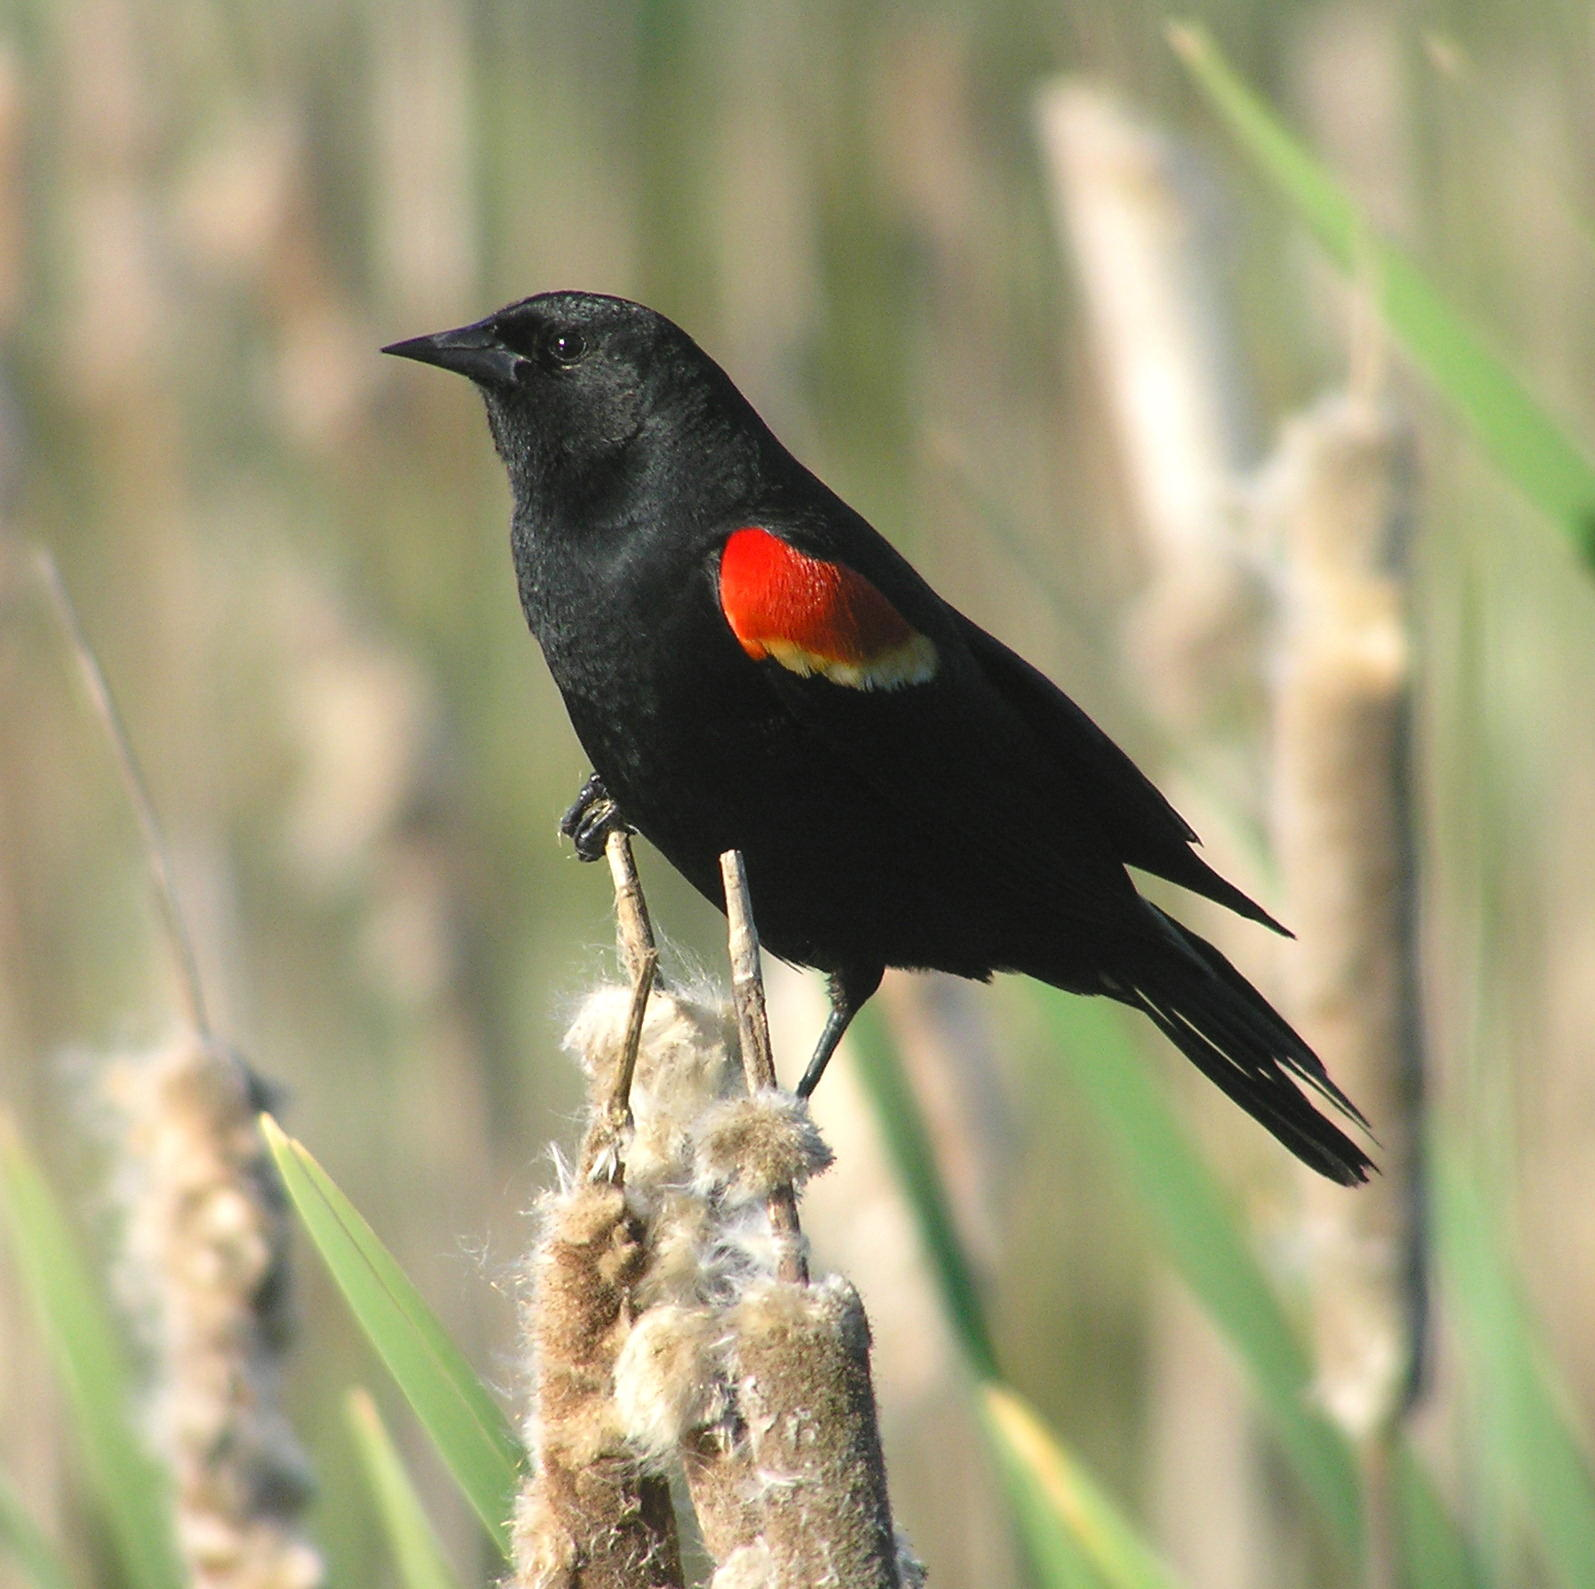 Red-Shouldered Blackbird | The Birds of Cuba